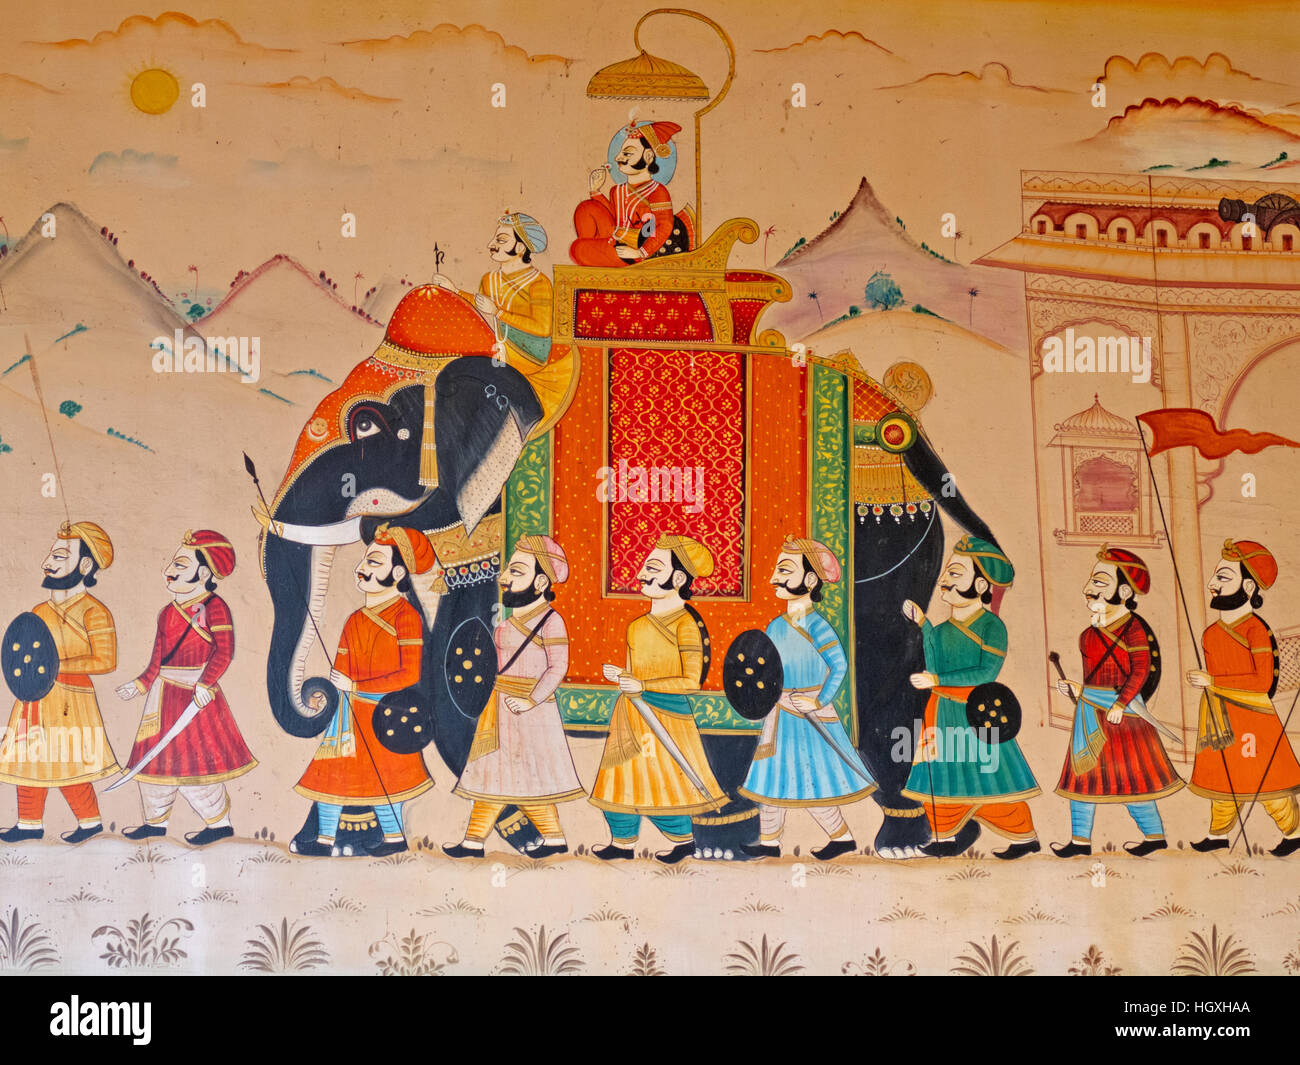 Wall art in Gujarat displaying the characteristic level of